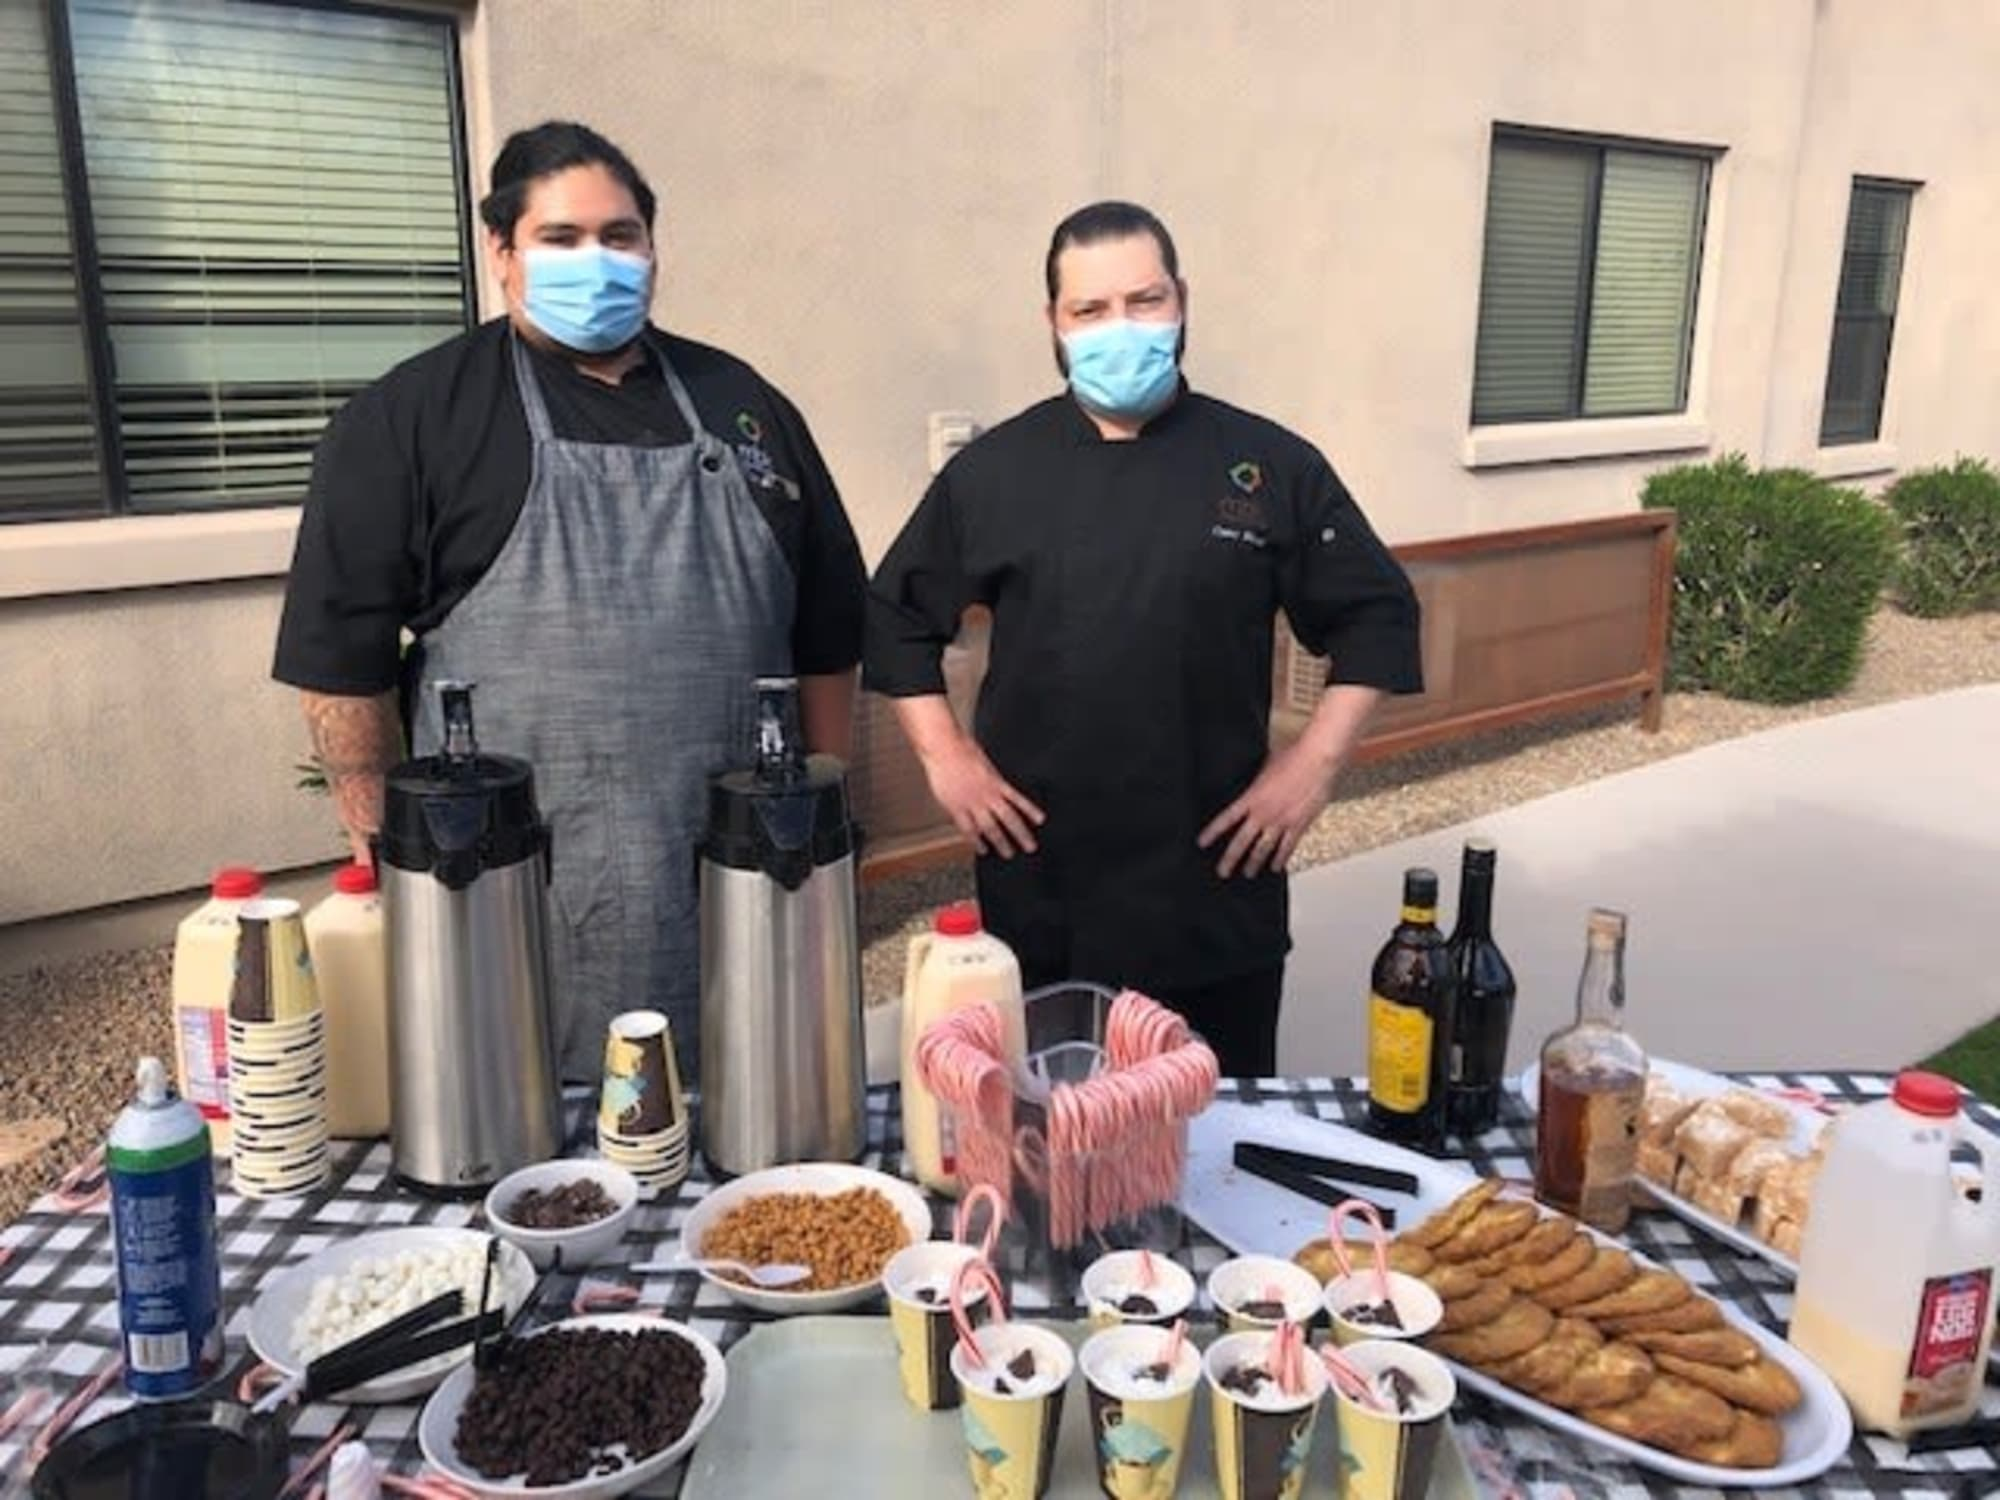 Serving food at Hacienda Del Rey in Litchfield Park, AZ